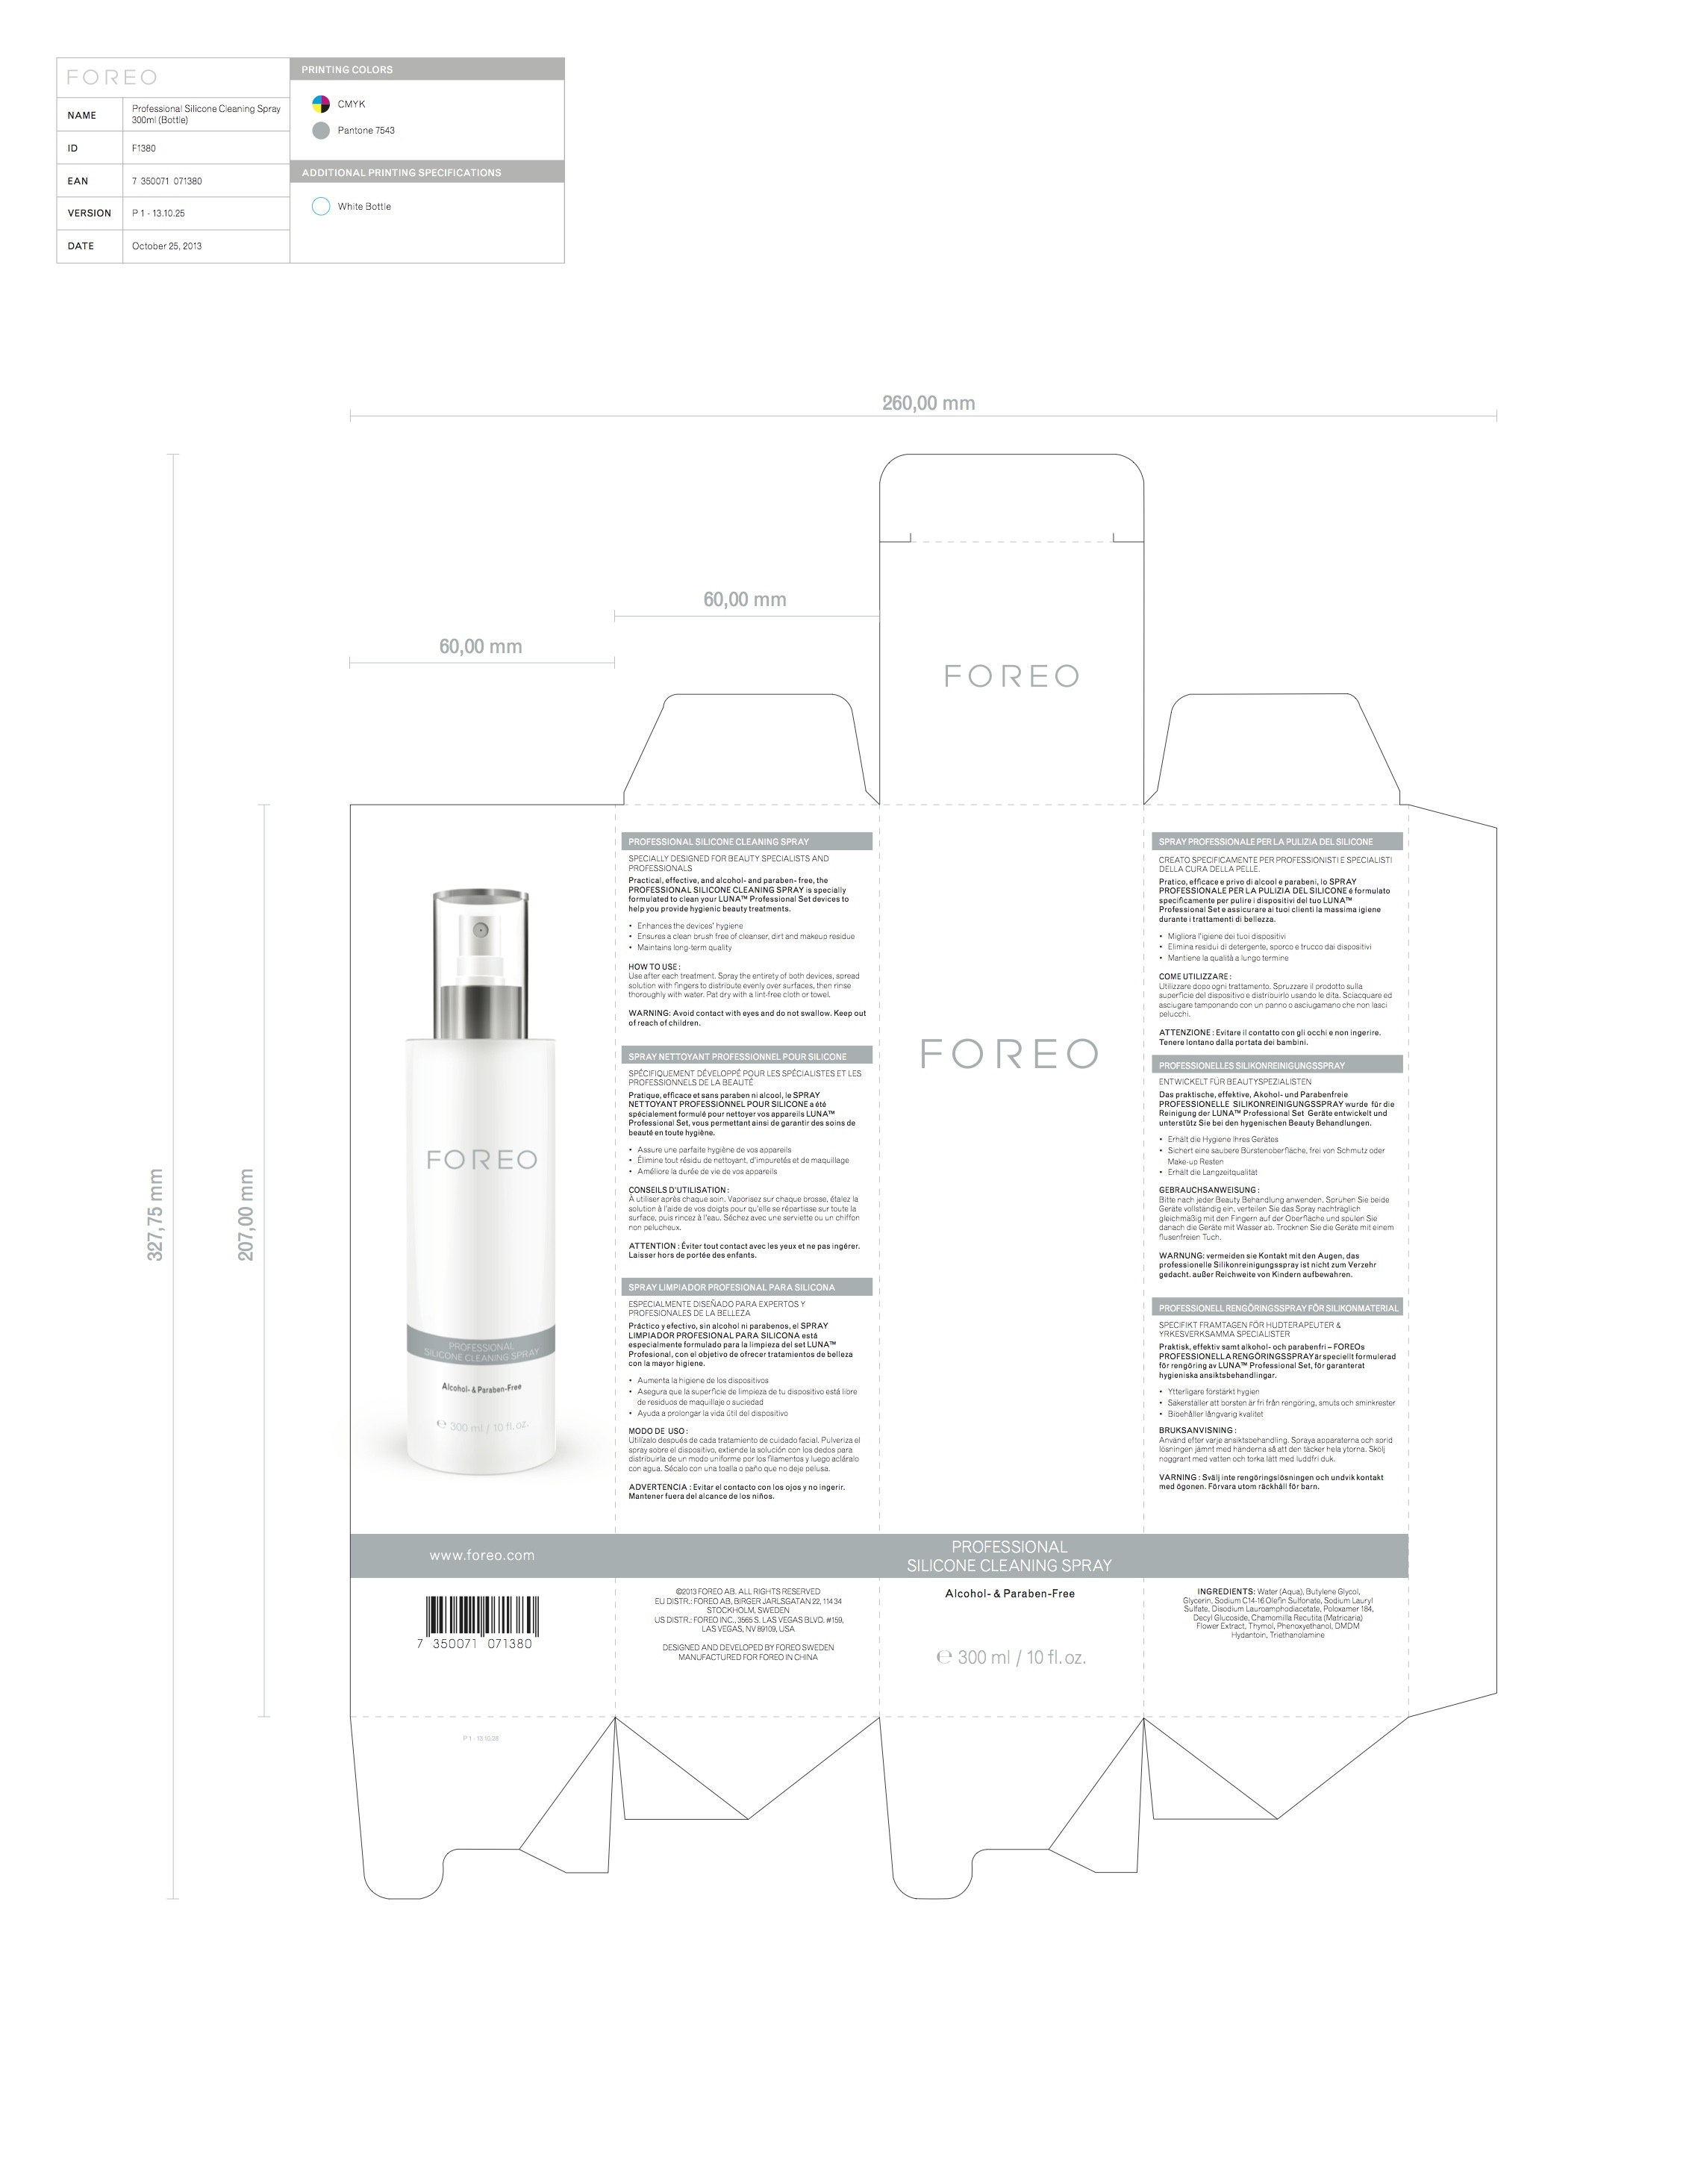 foreo_behance_packaging.jpg